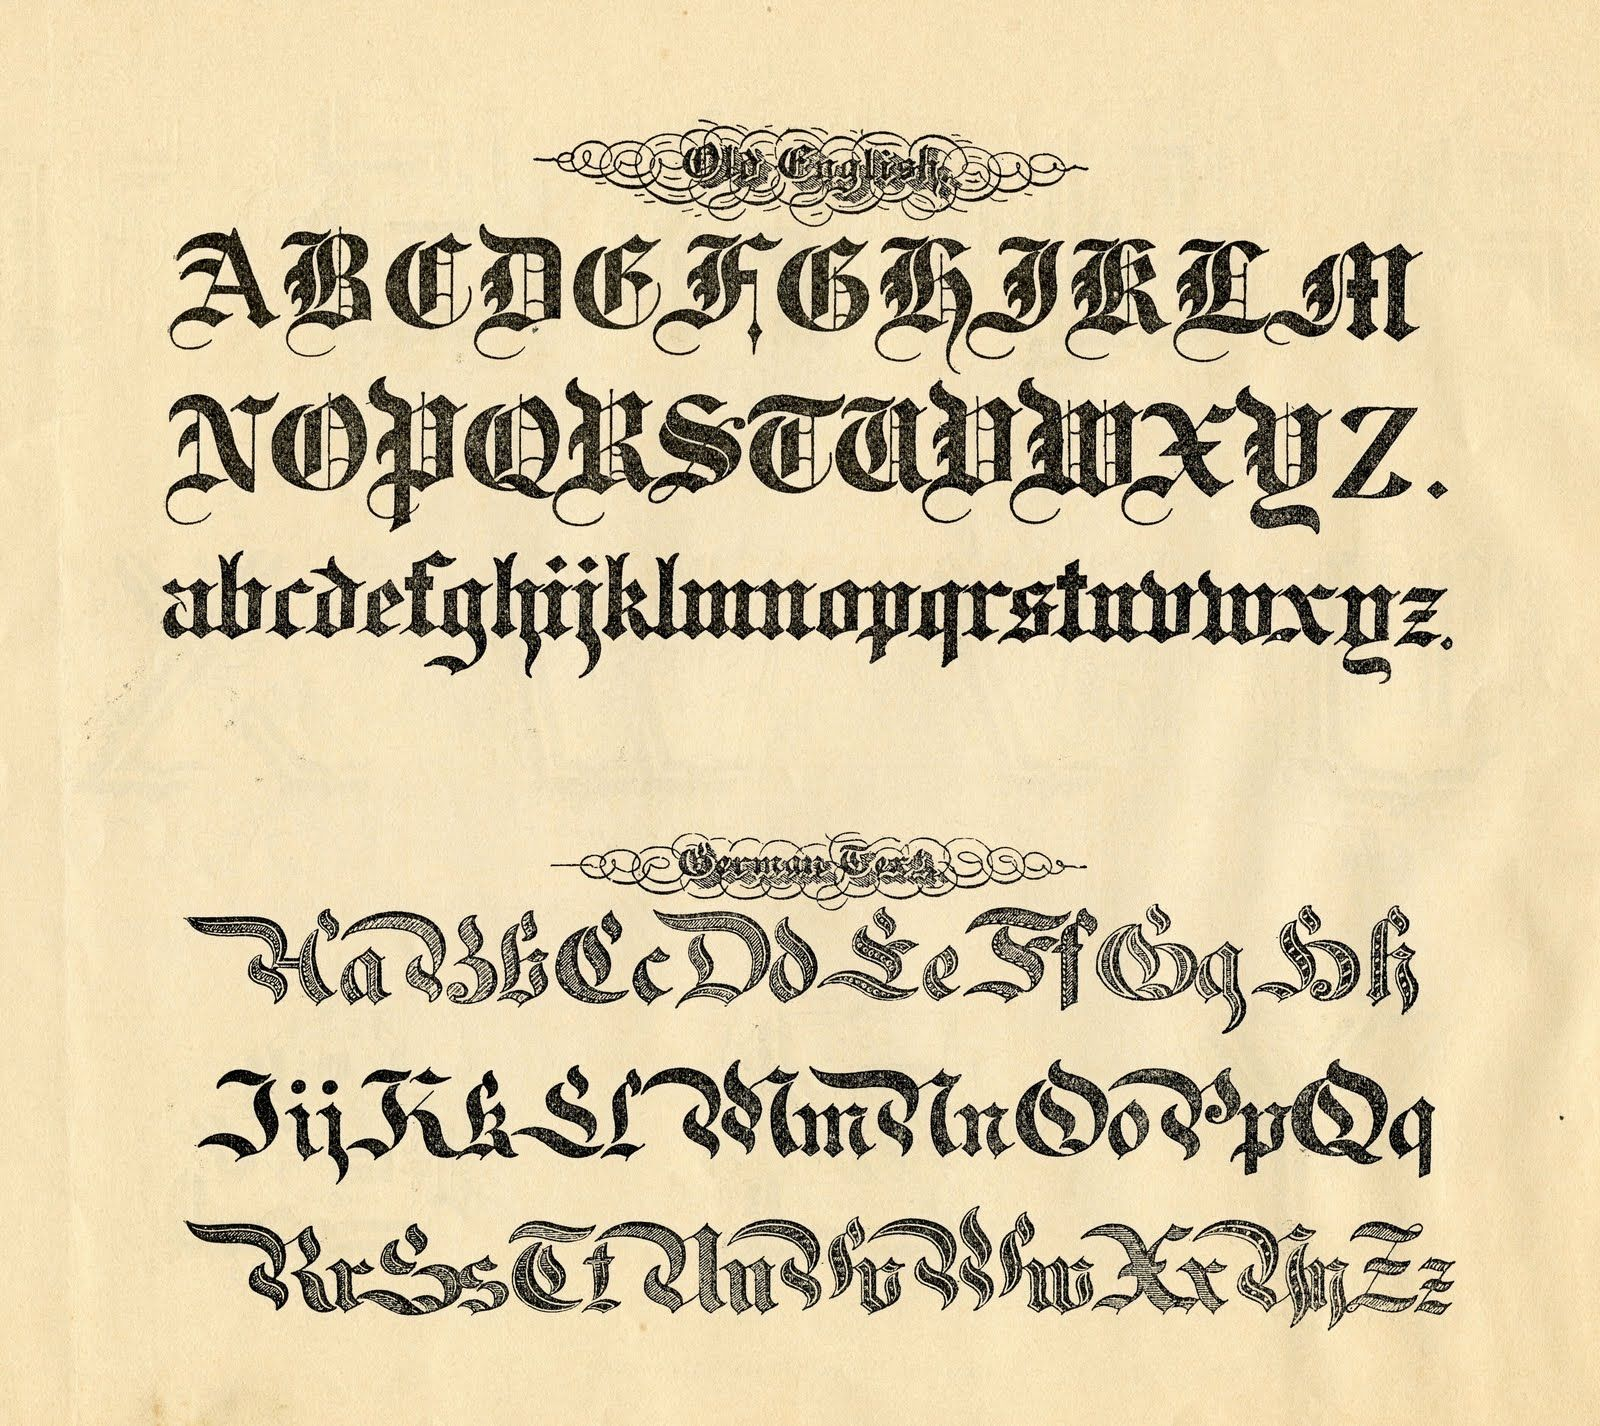 Gothic was a popular medieval calligraphy it also